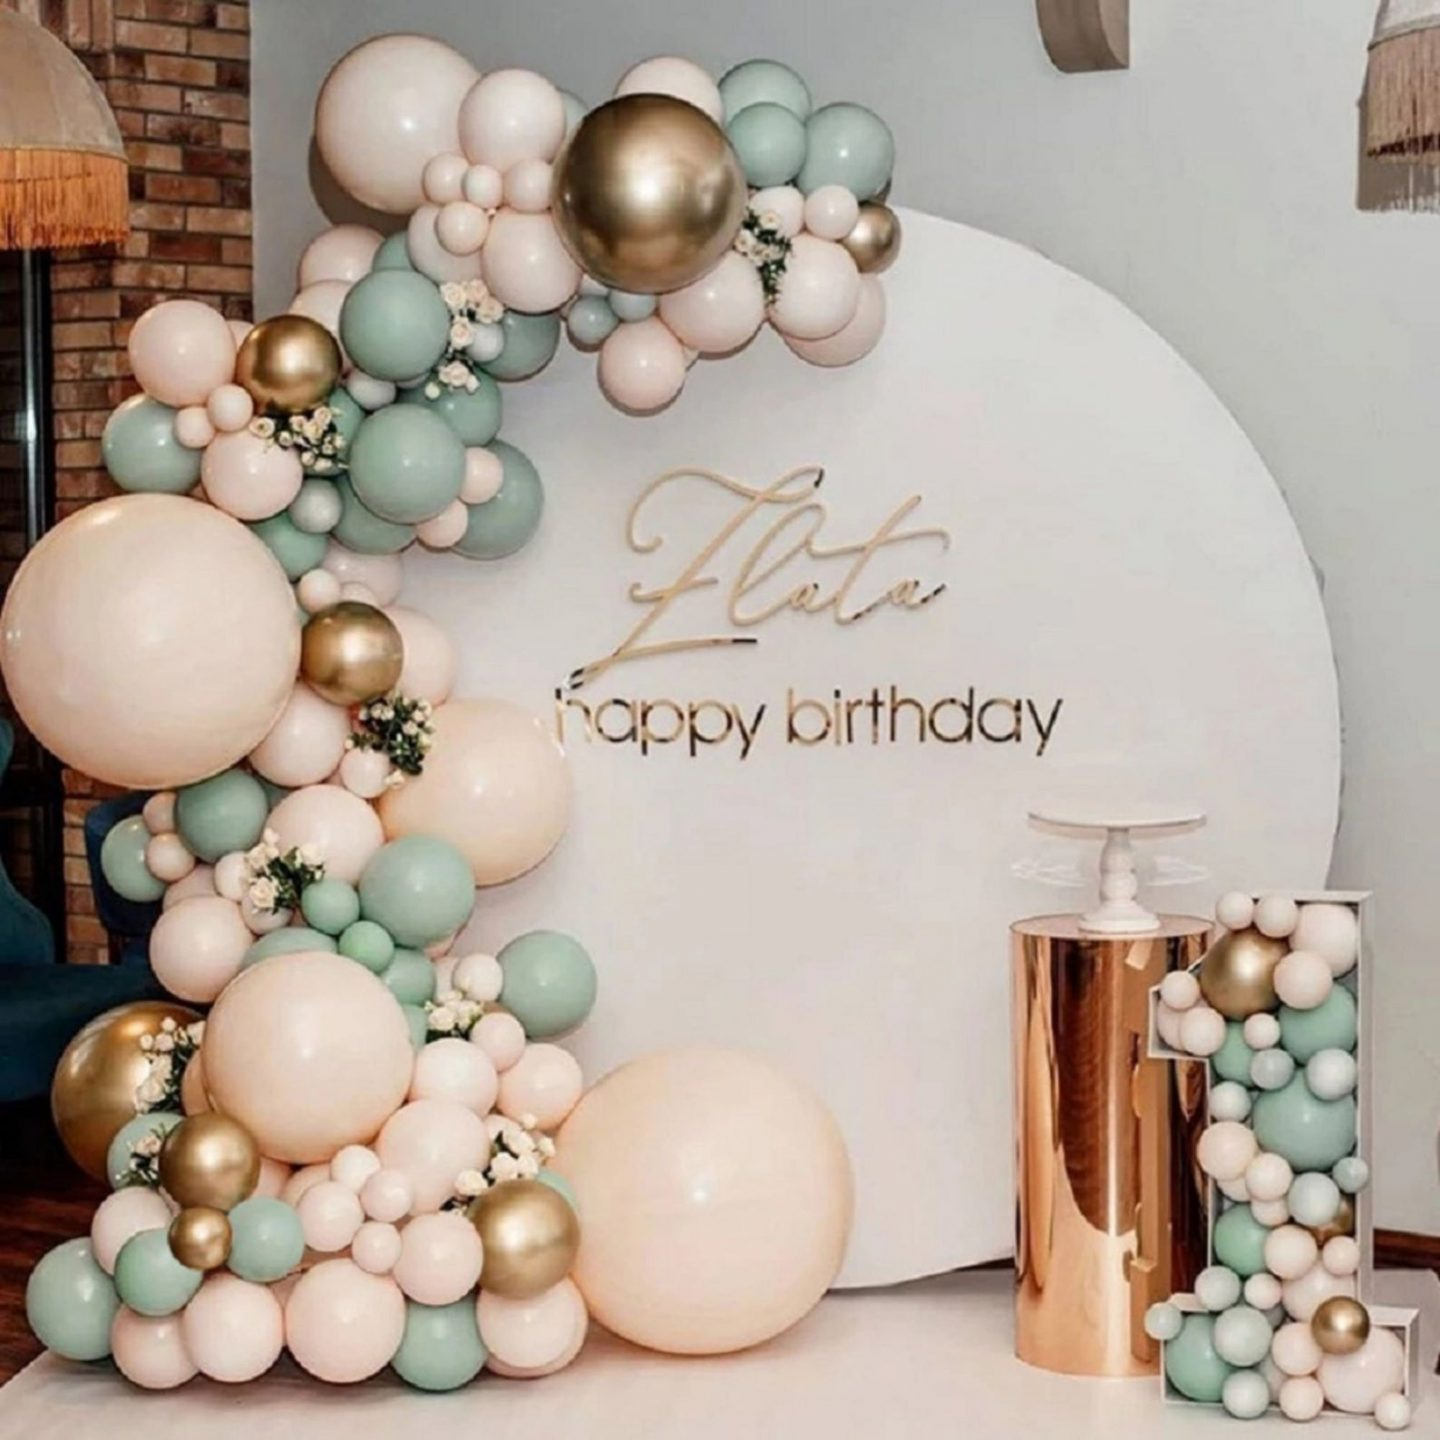 Cream and sage green birthday balloons with gold details